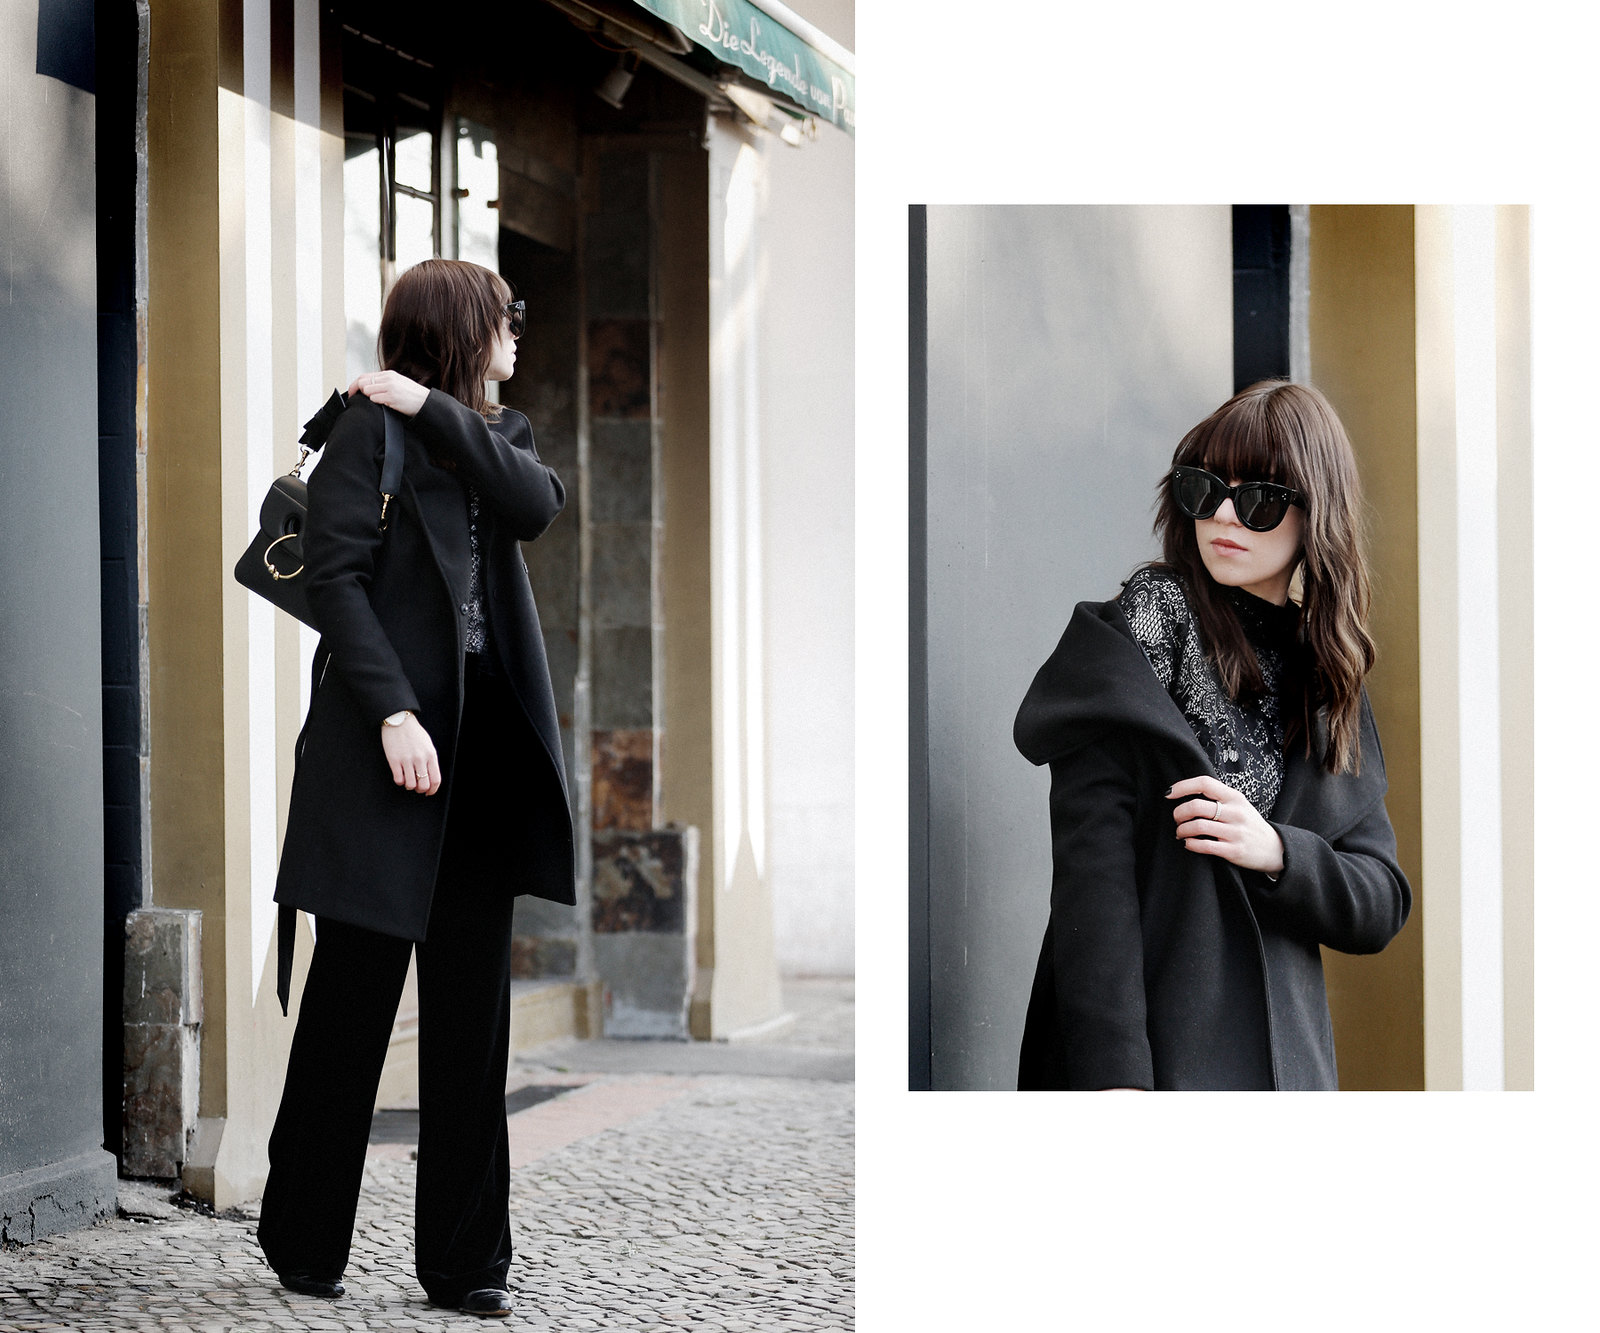 outfit black vila lace coat winter berlin j.w.anderson pierce bag céline audrey sunglasses minimal allblack clean minimal styling lookbook cats & dogs fashionblog ricarda schernus modeblogger düsseldorf 3